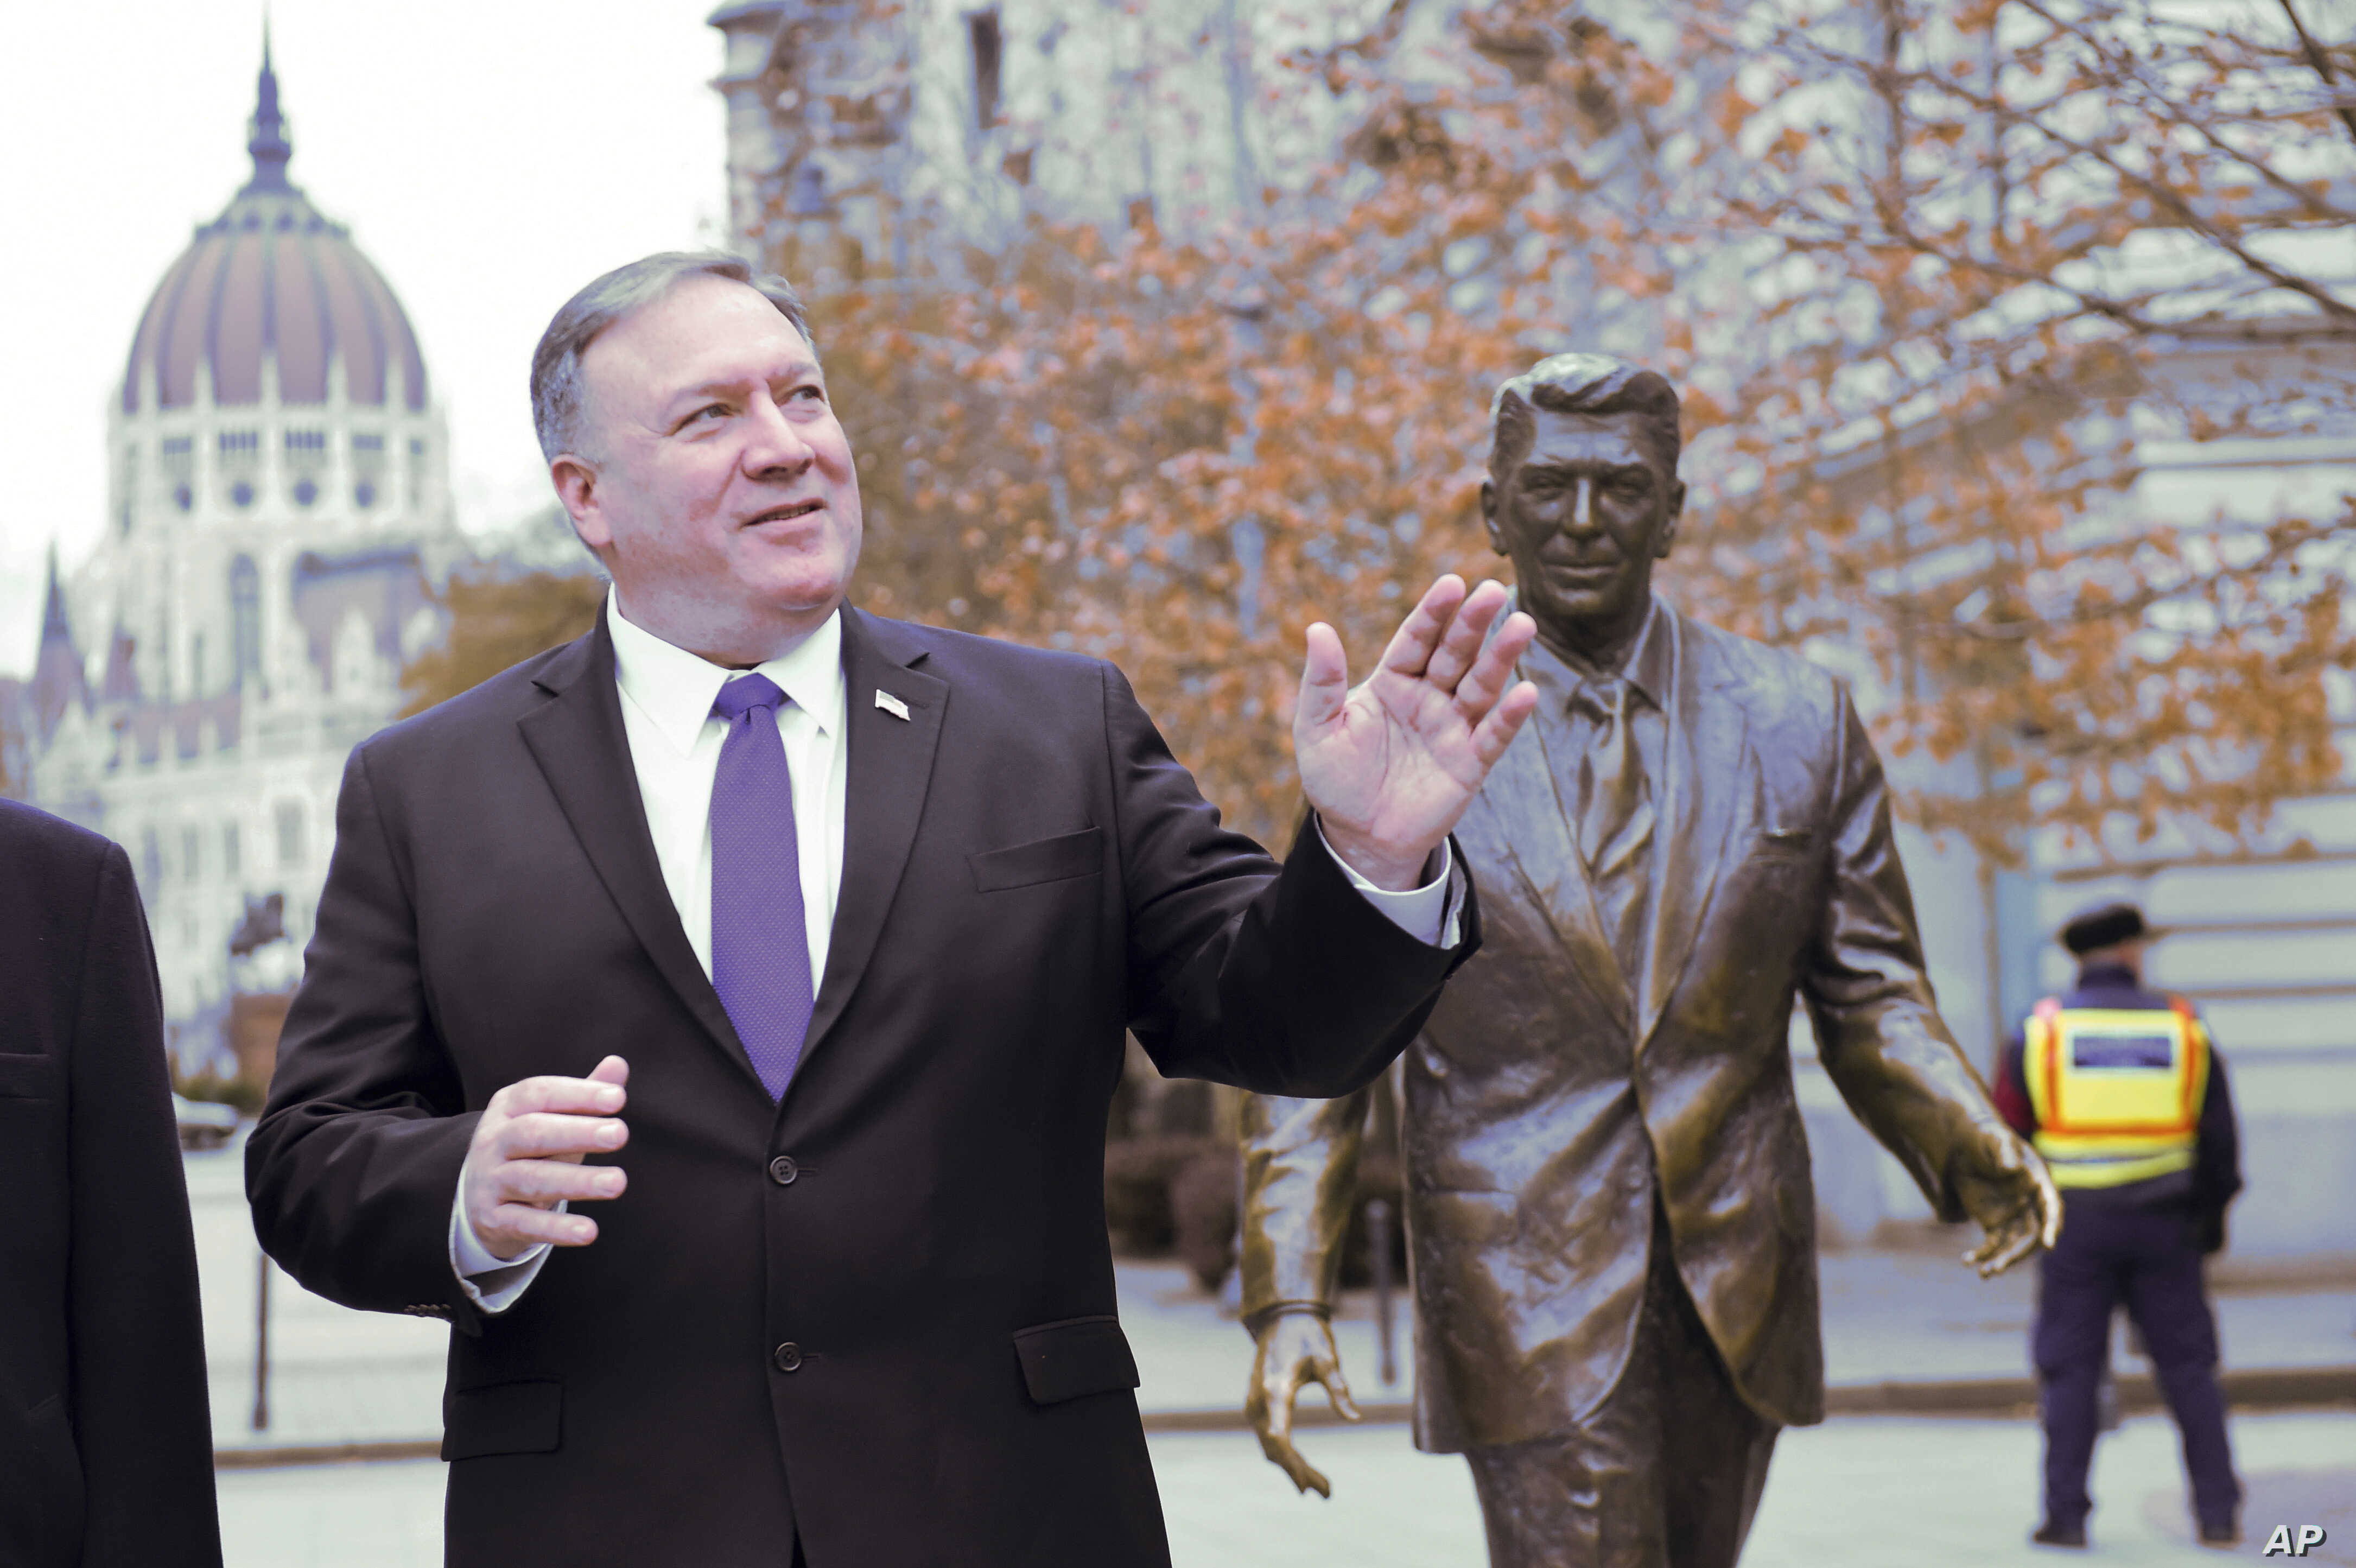 U.S. Secretary of State Mike Pompeo is pictured next to a statue of former U.S. President Ronald Reagan at the Liberty square (Szabadsag) in Budapest, Hungary, Feb. 11, 2019.